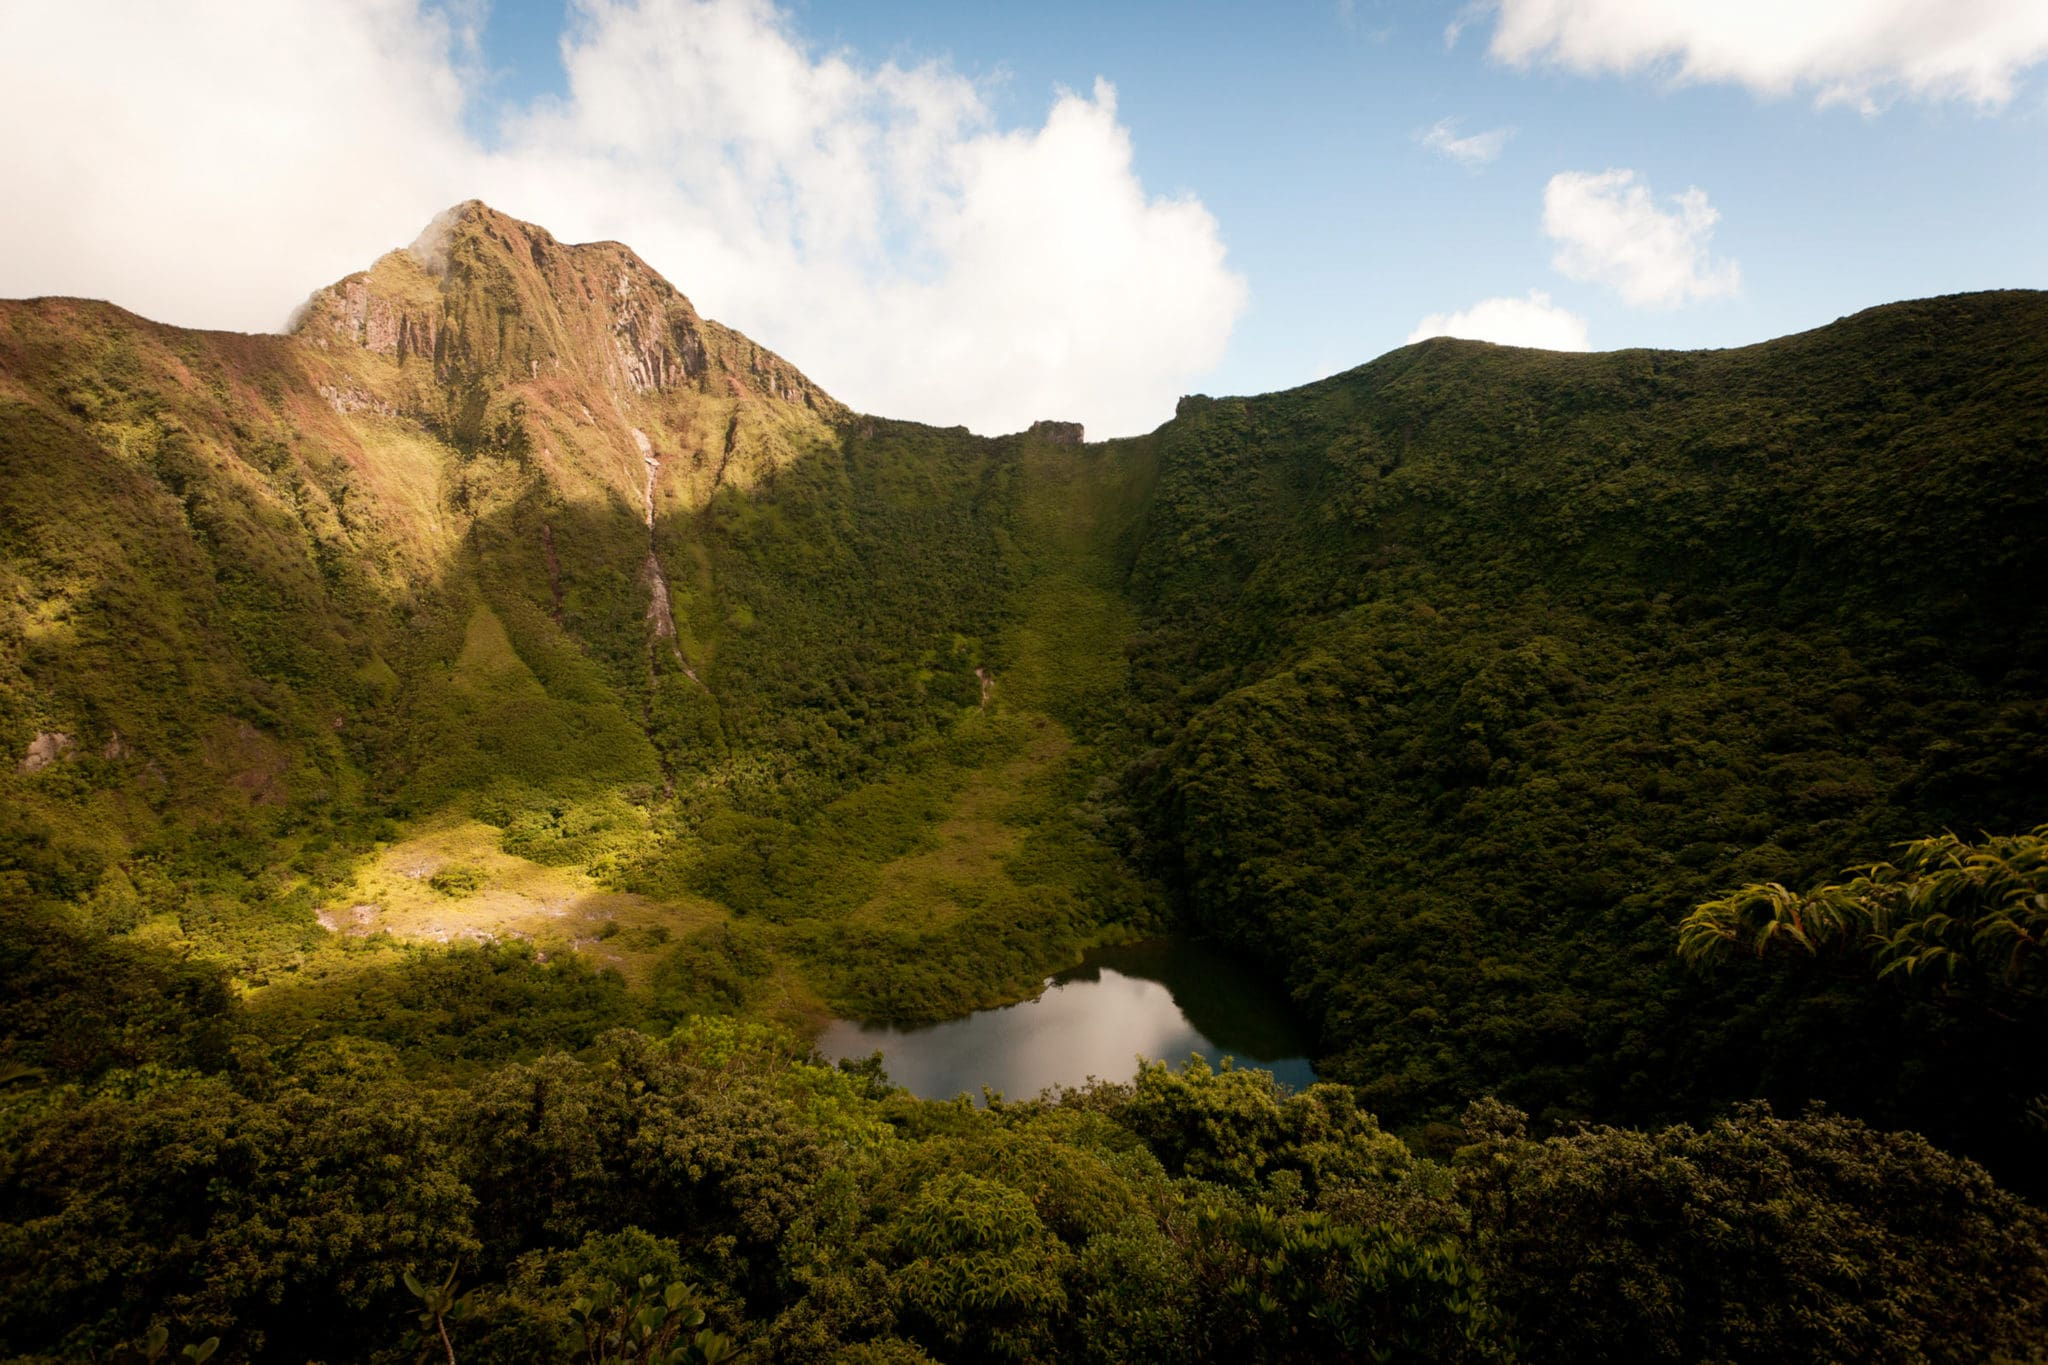 Otherworldly Insides of Mt. Liamuiaga, St. Kitts